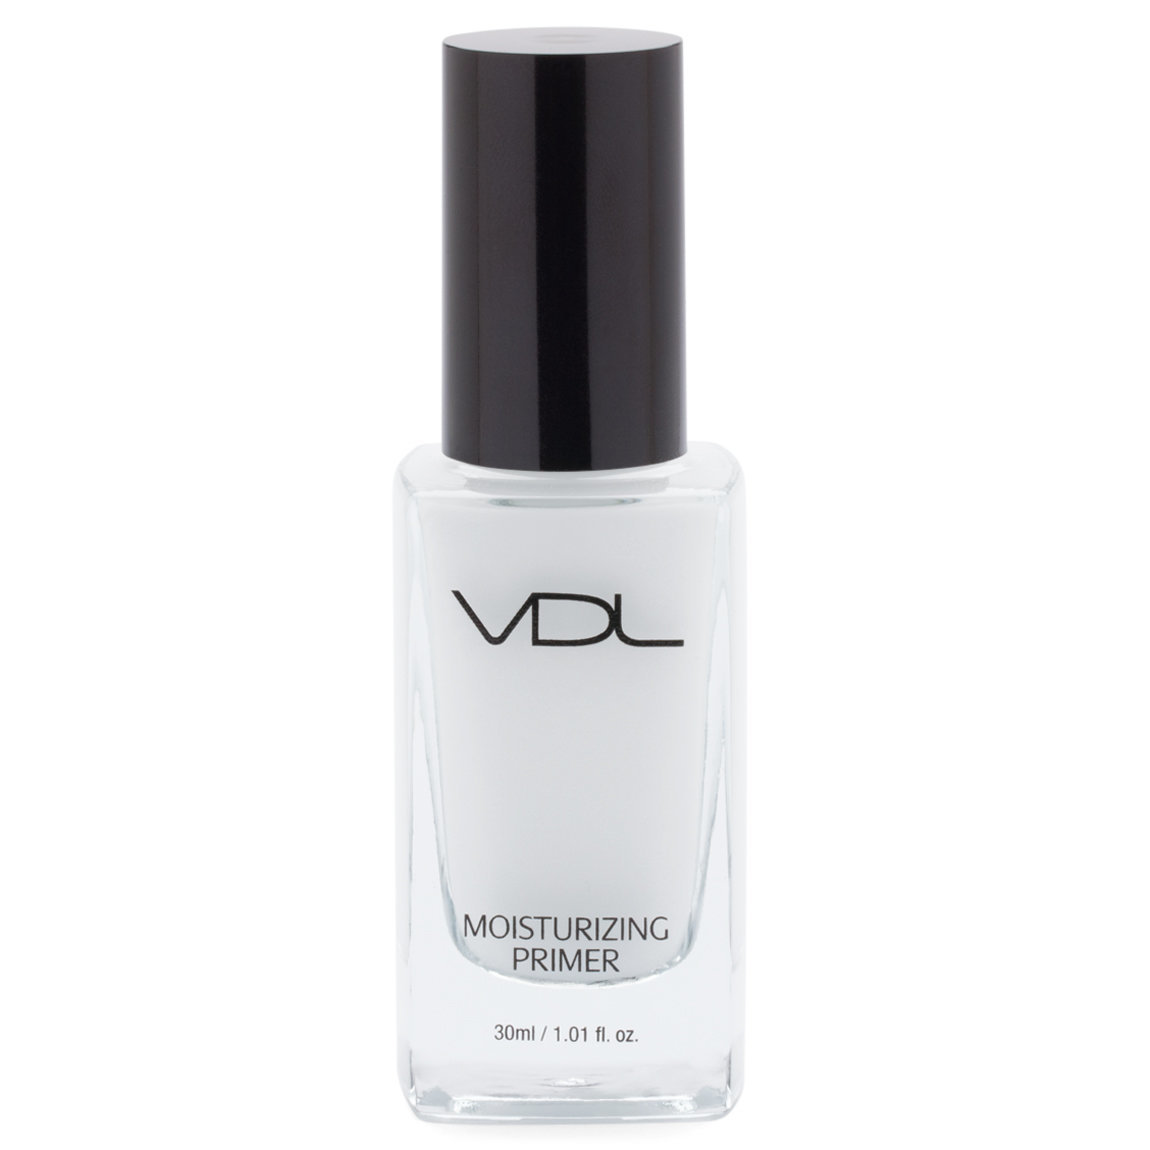 VDL Moisturizing Primer product swatch.